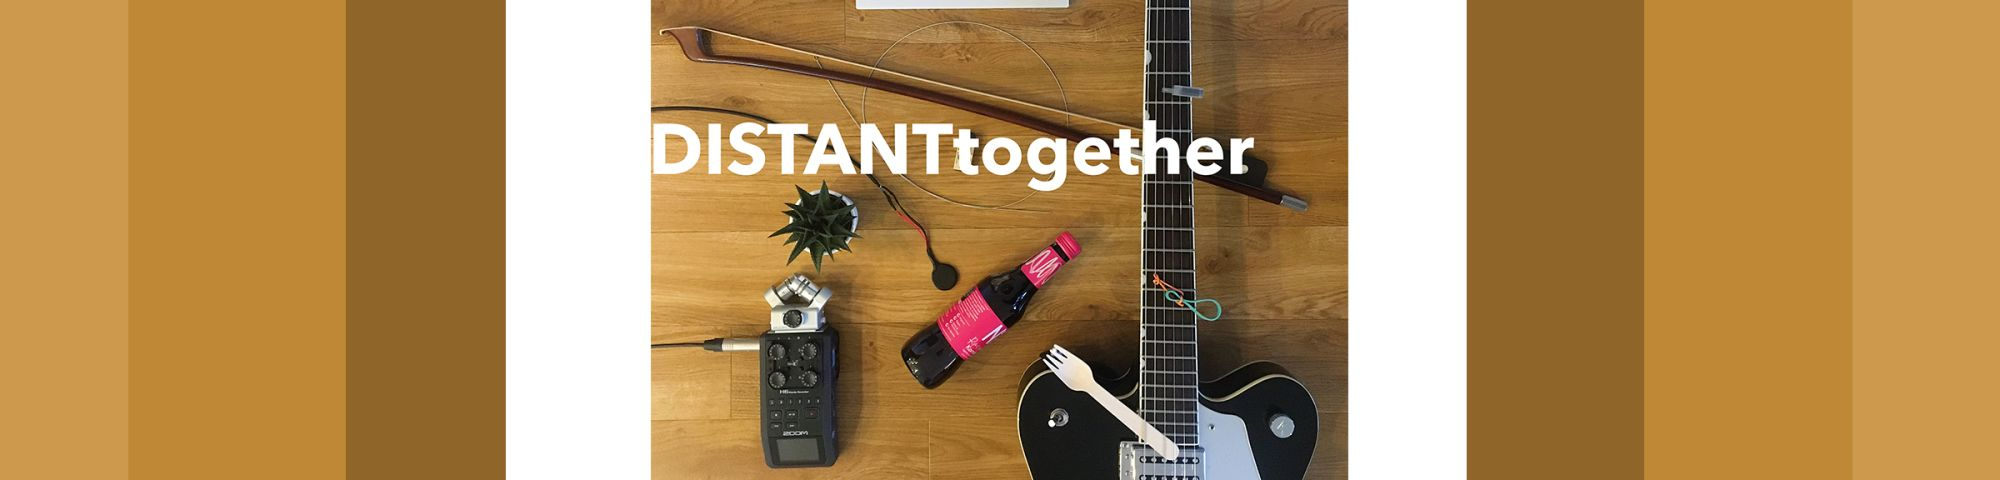 Distanttogether text with guitar and plant on a table